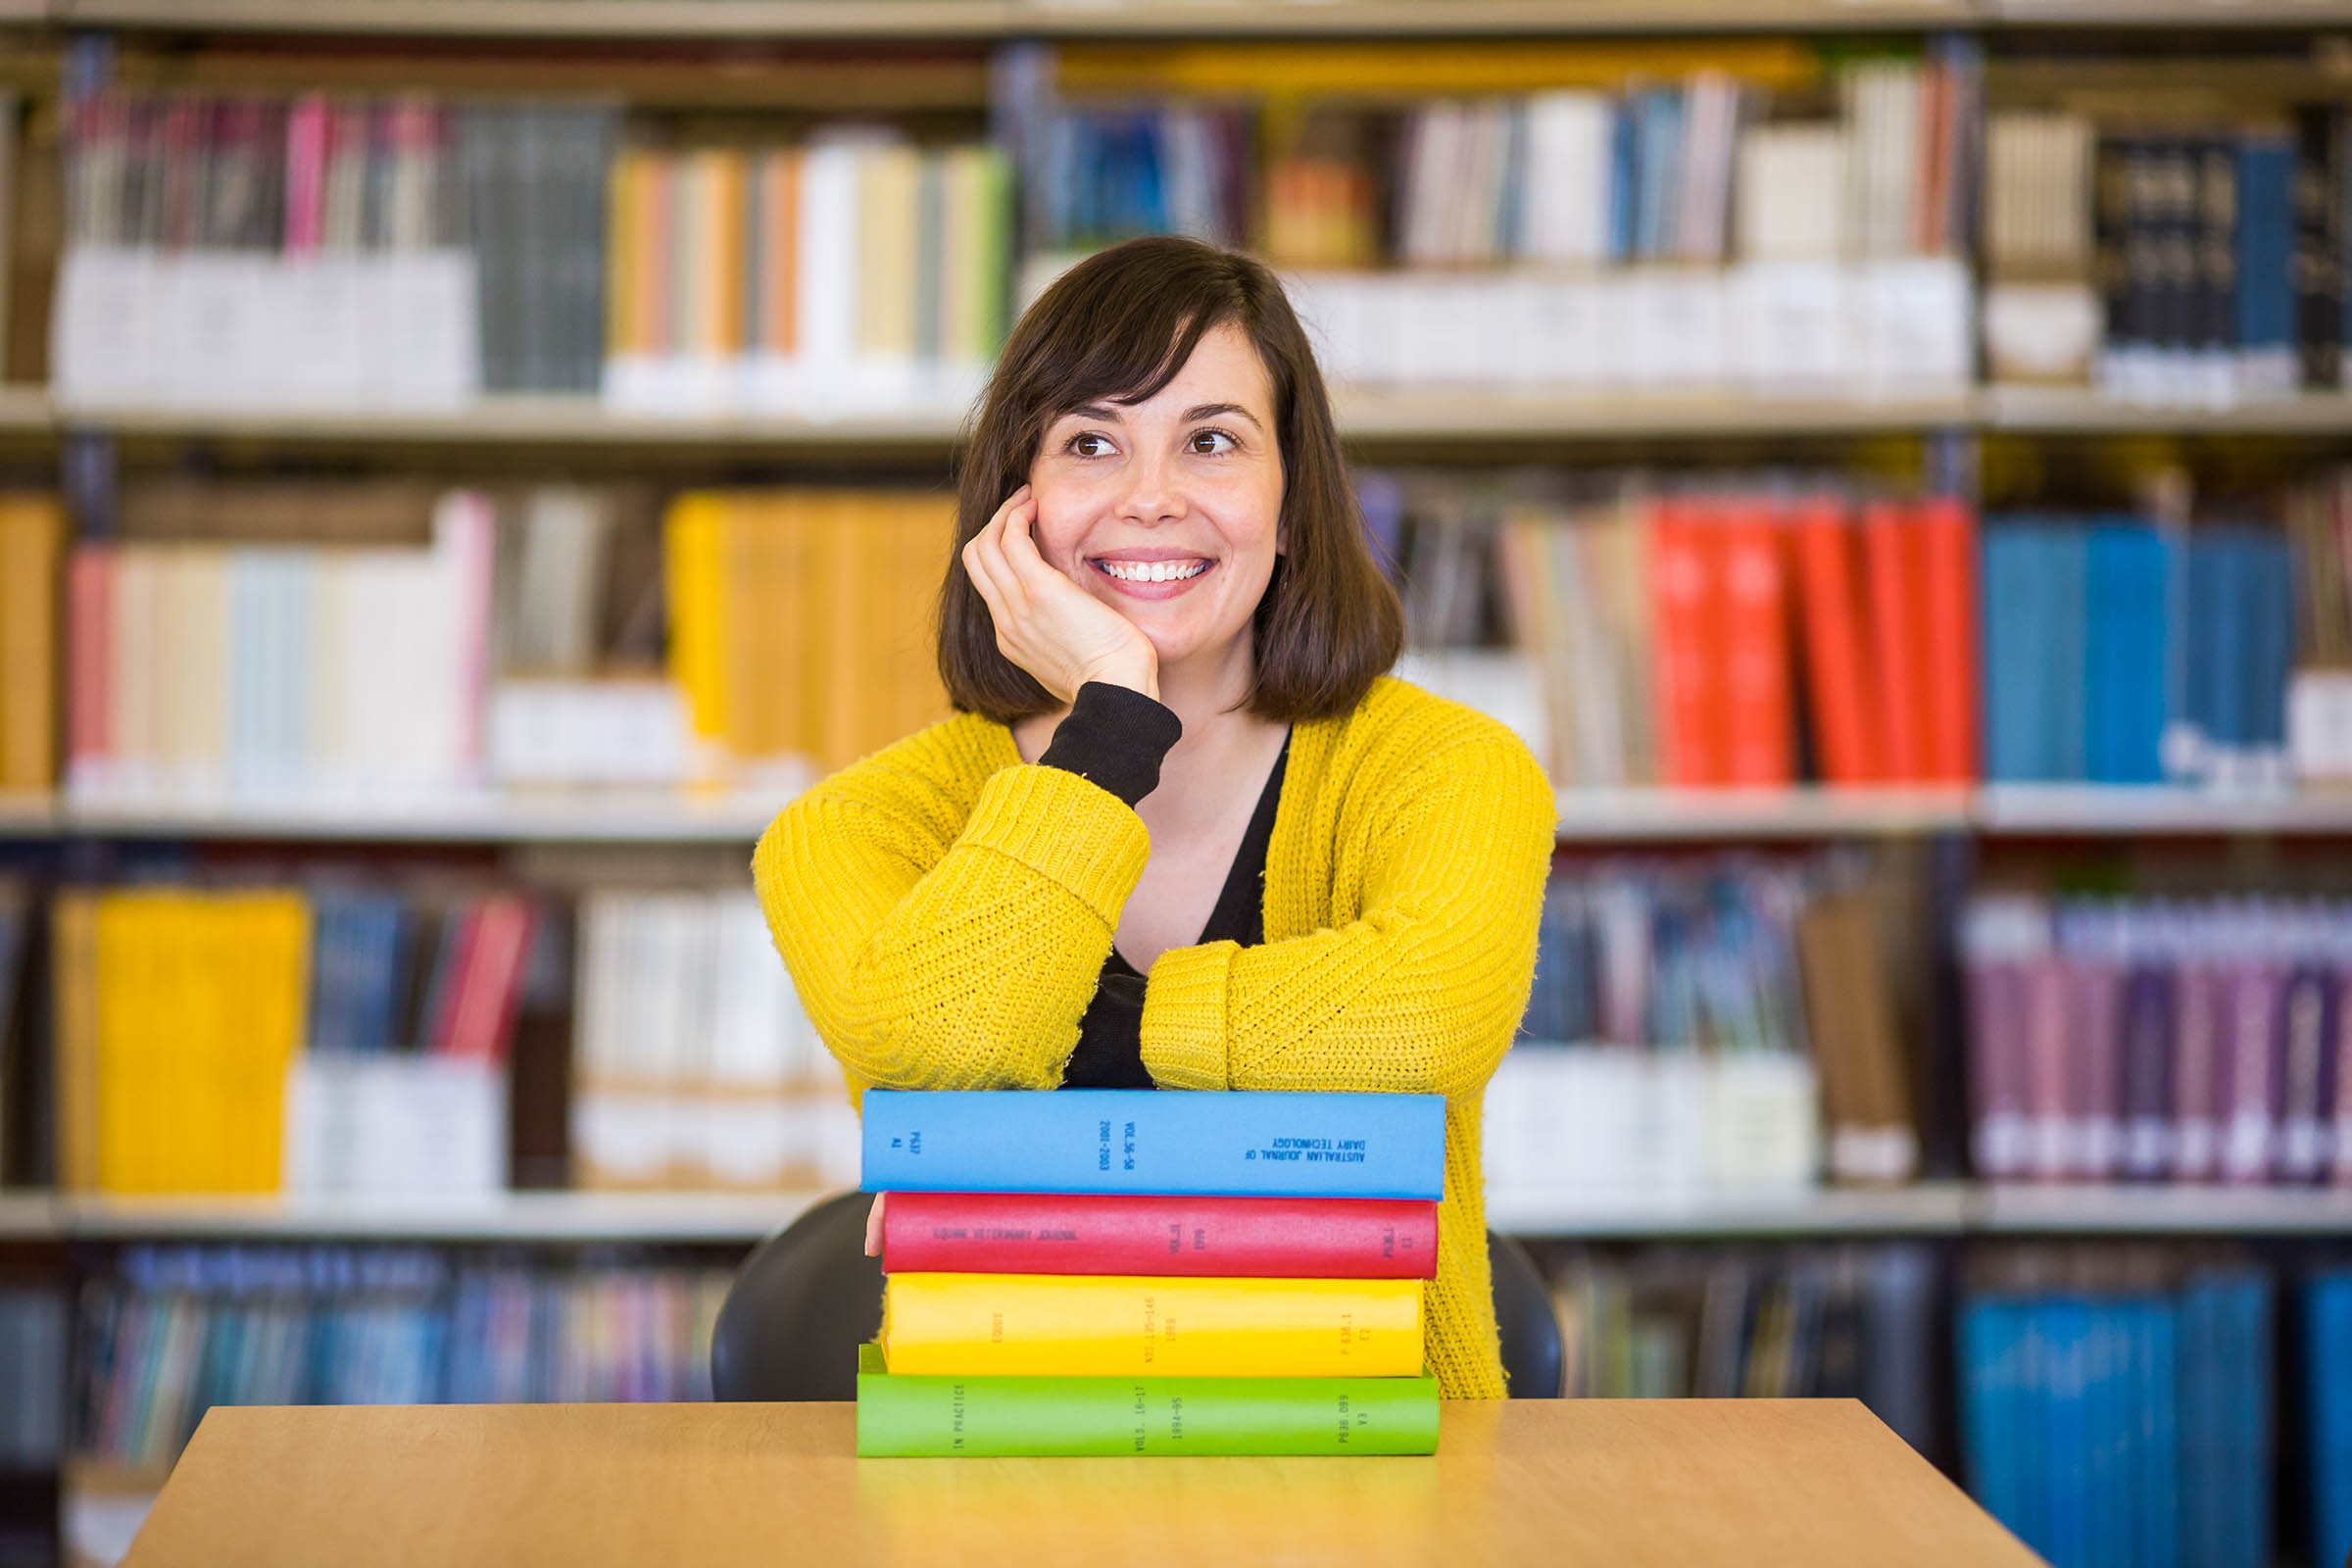 Woman leaning on a pile of books considering upskilling